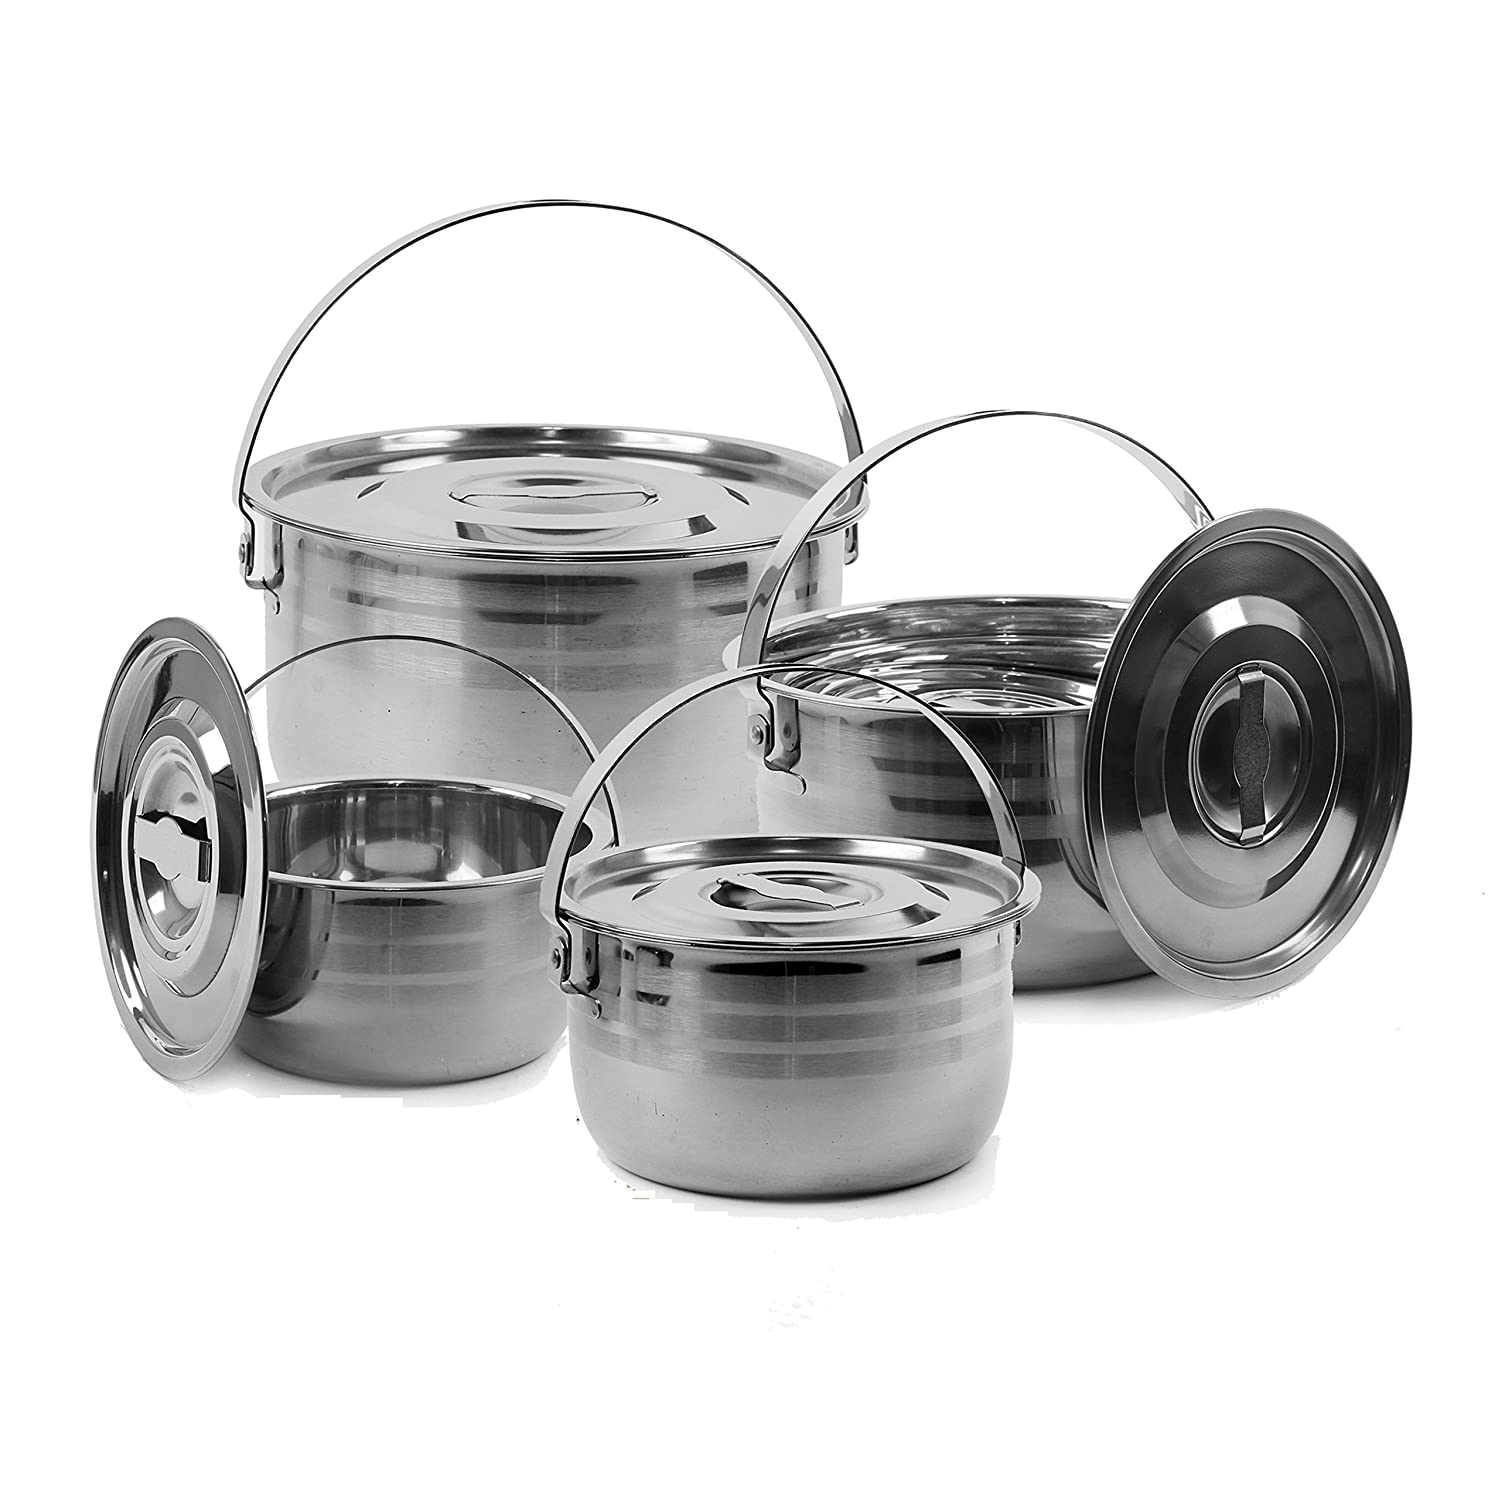 3. Wealers Camping Cookware Set - Compact Stainless Steel Campfire Cooking Pots and Pans